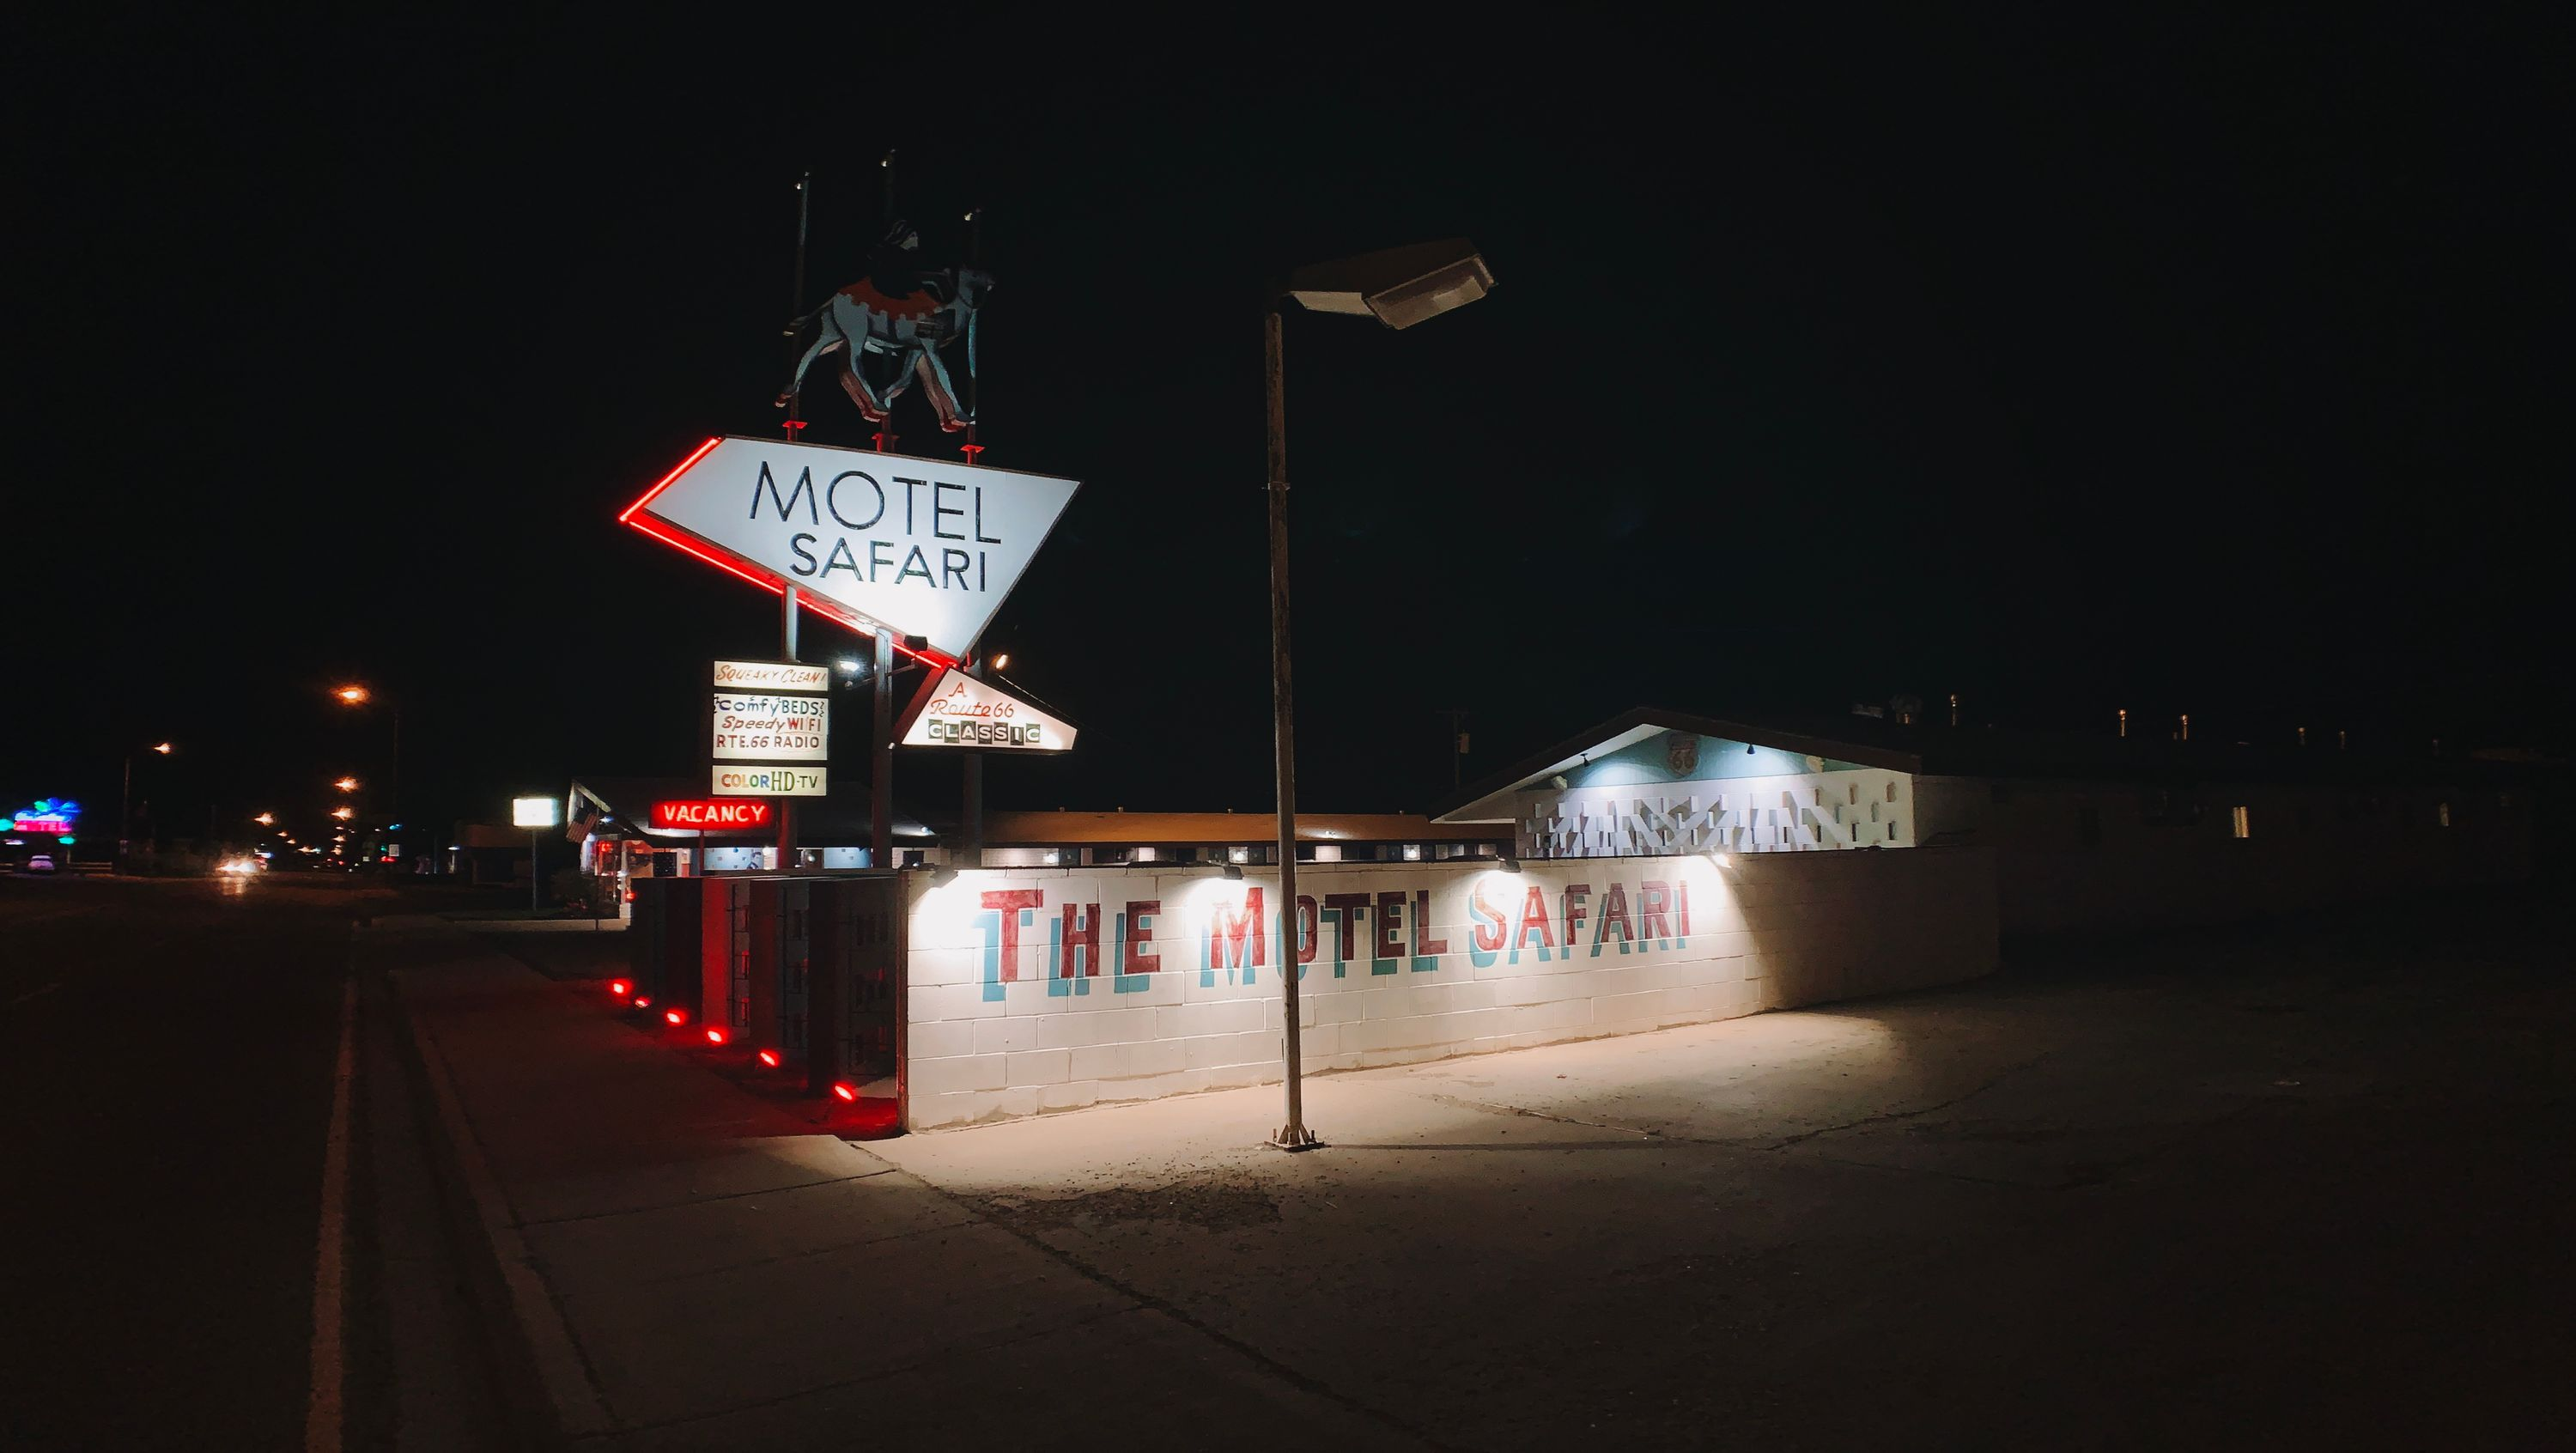 Motel Safari in Tucumcari, NM